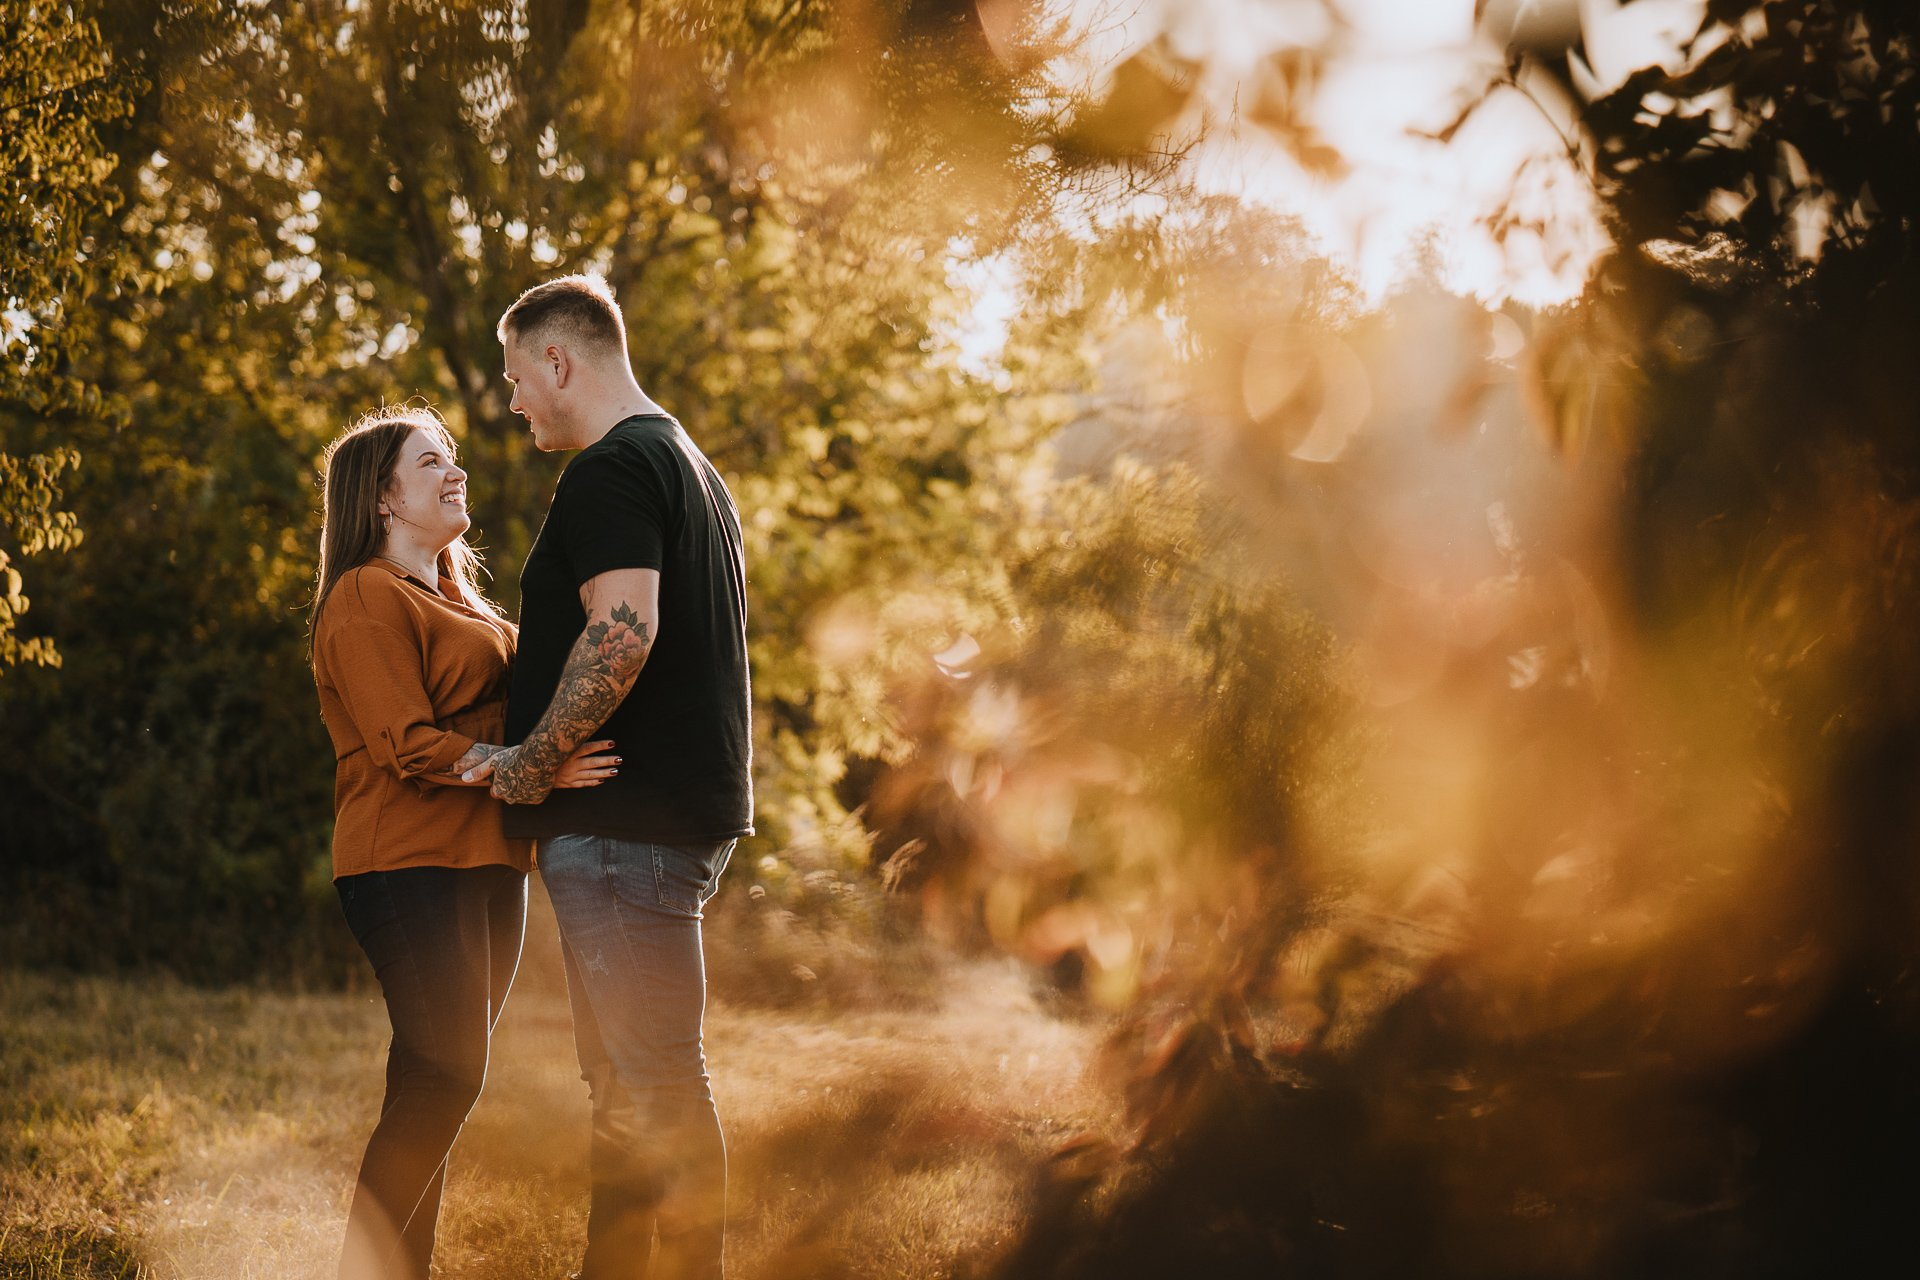 Engaged couple holding hands in autumn woodland